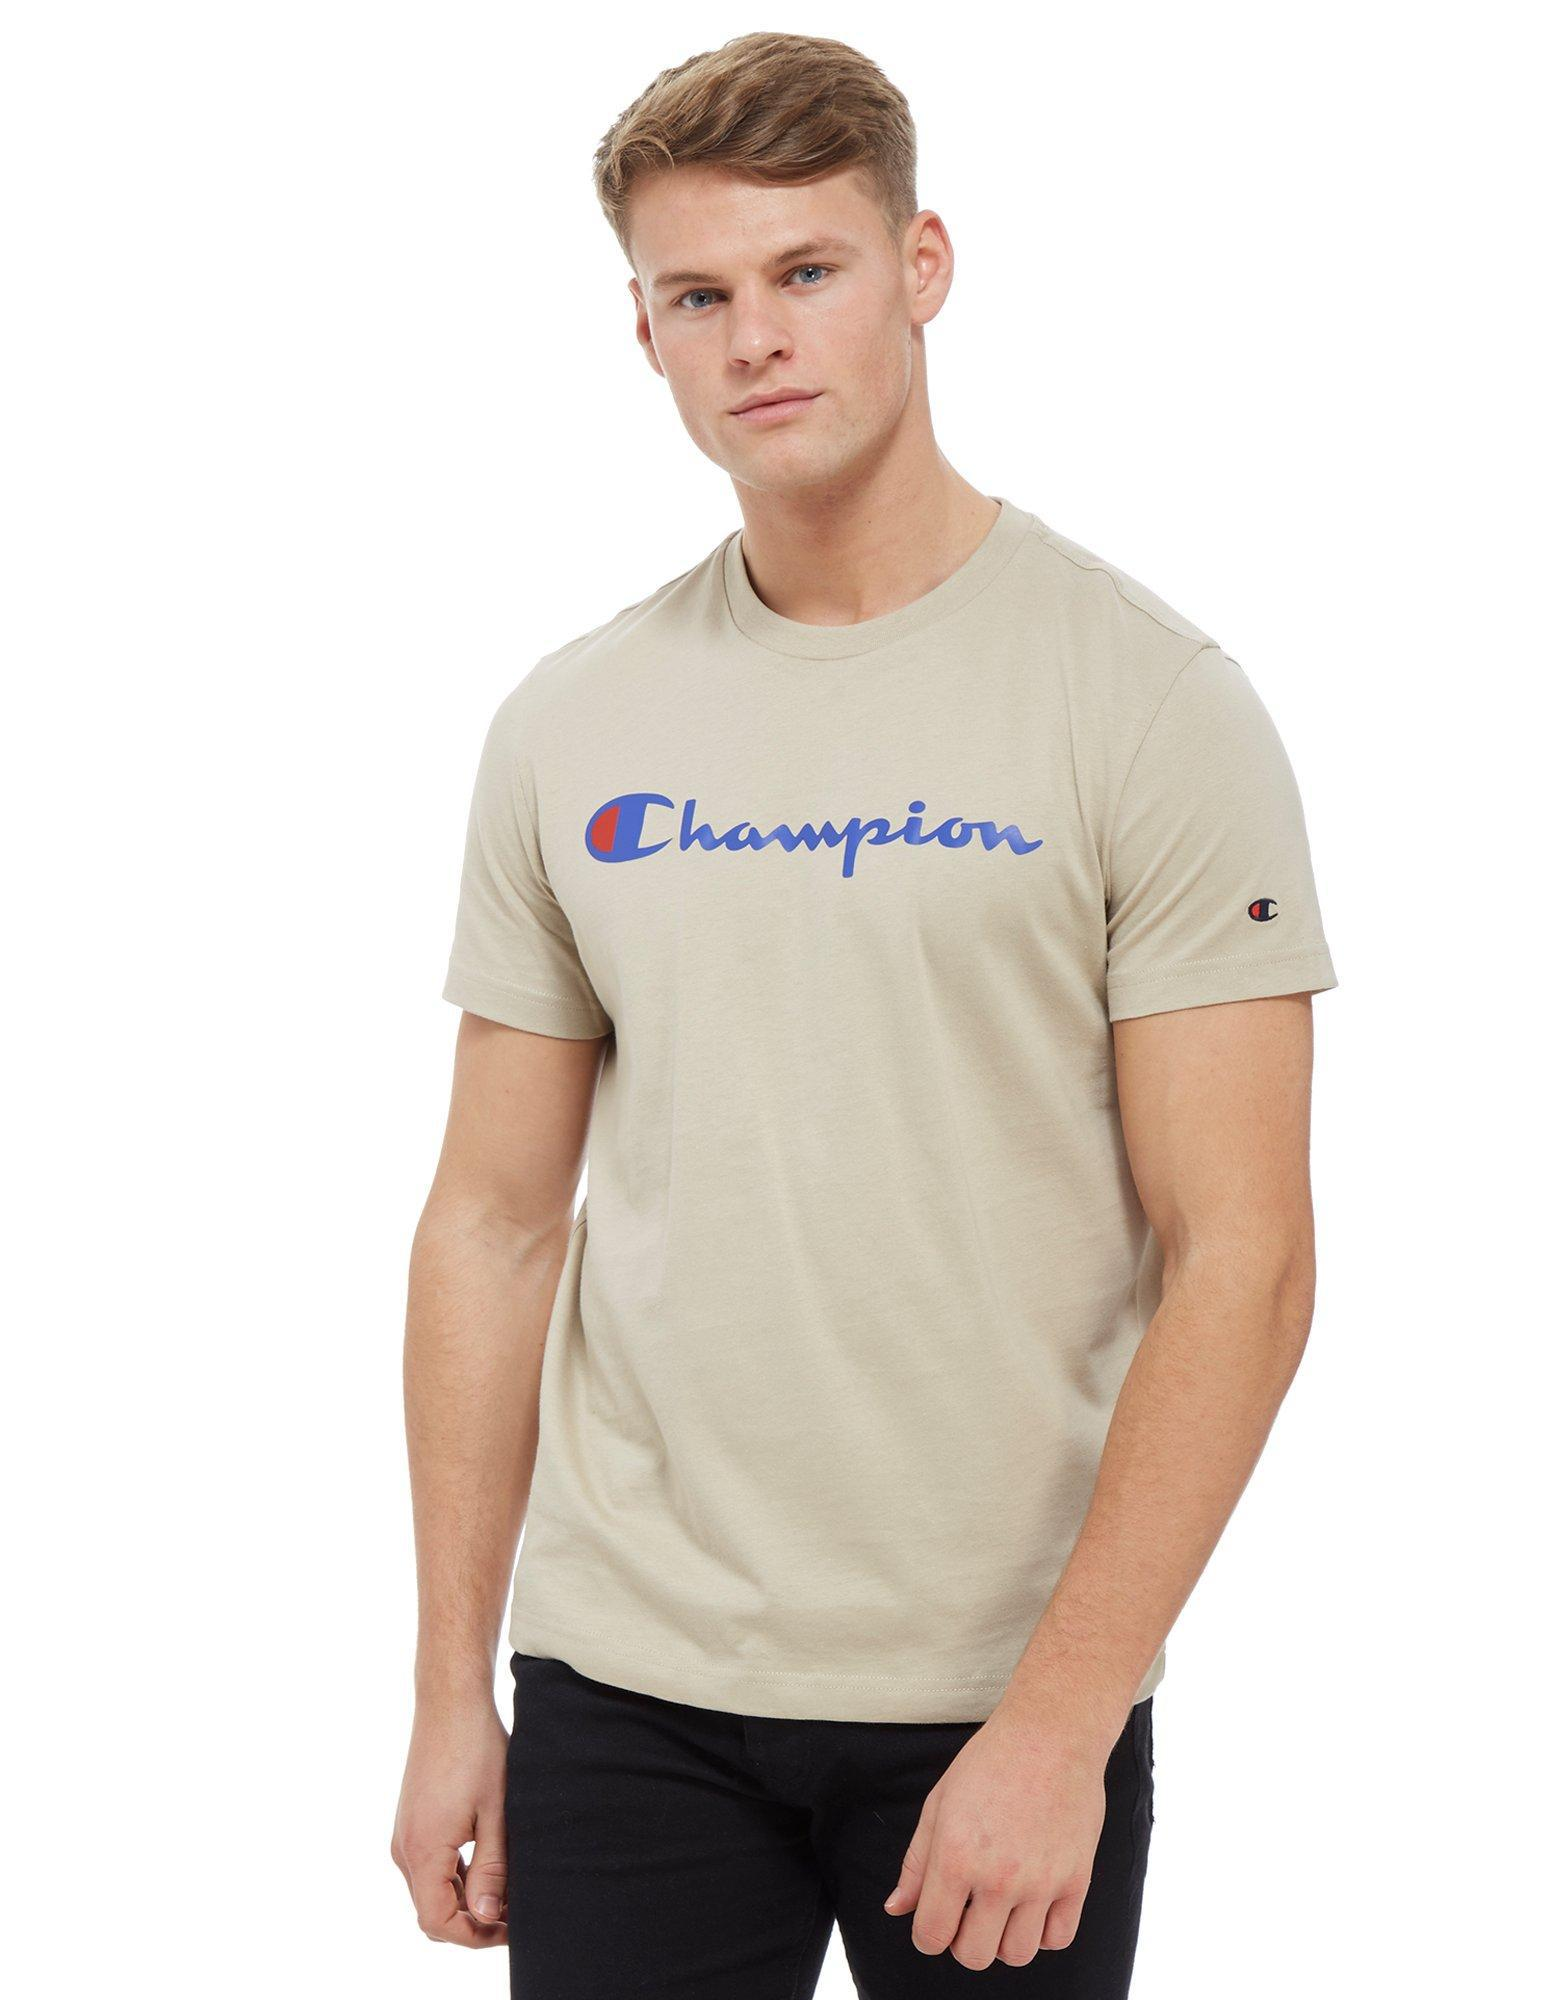 b9a883c81bc2 Champion Core Script T-shirt in Brown for Men - Lyst